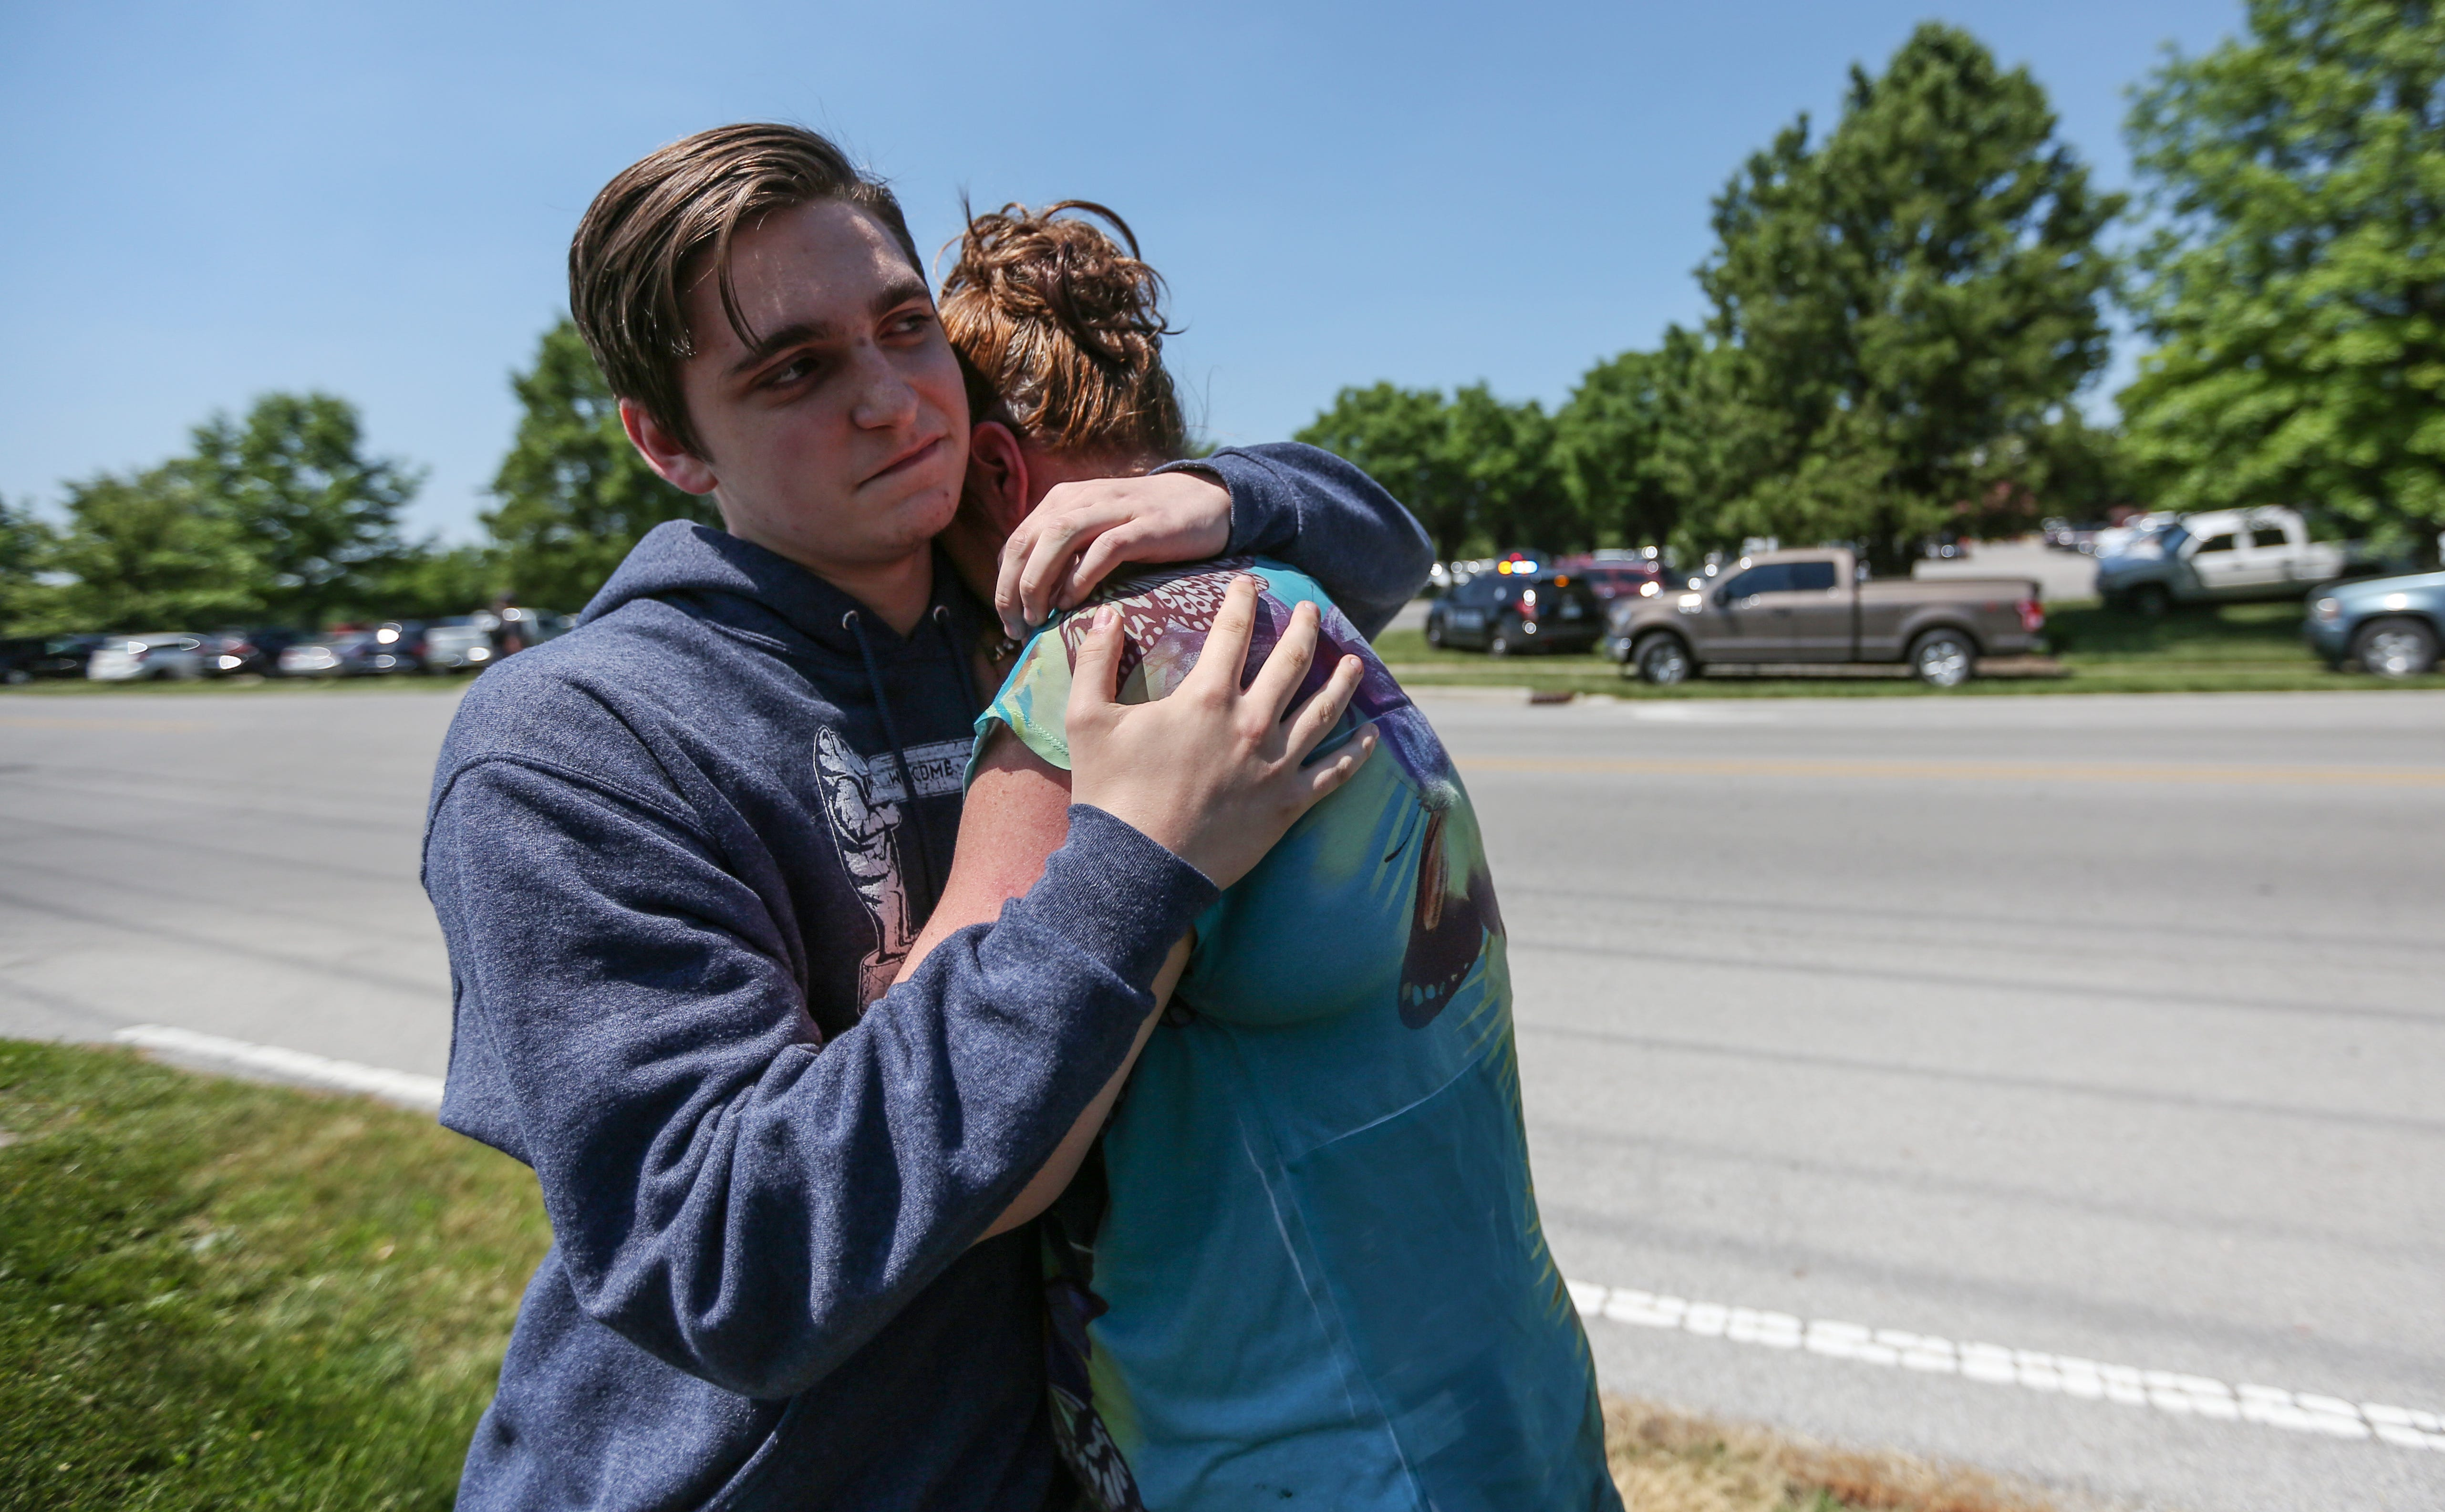 Teacher intervened to stop Noblesville, Indiana, school shooter, students and parents say